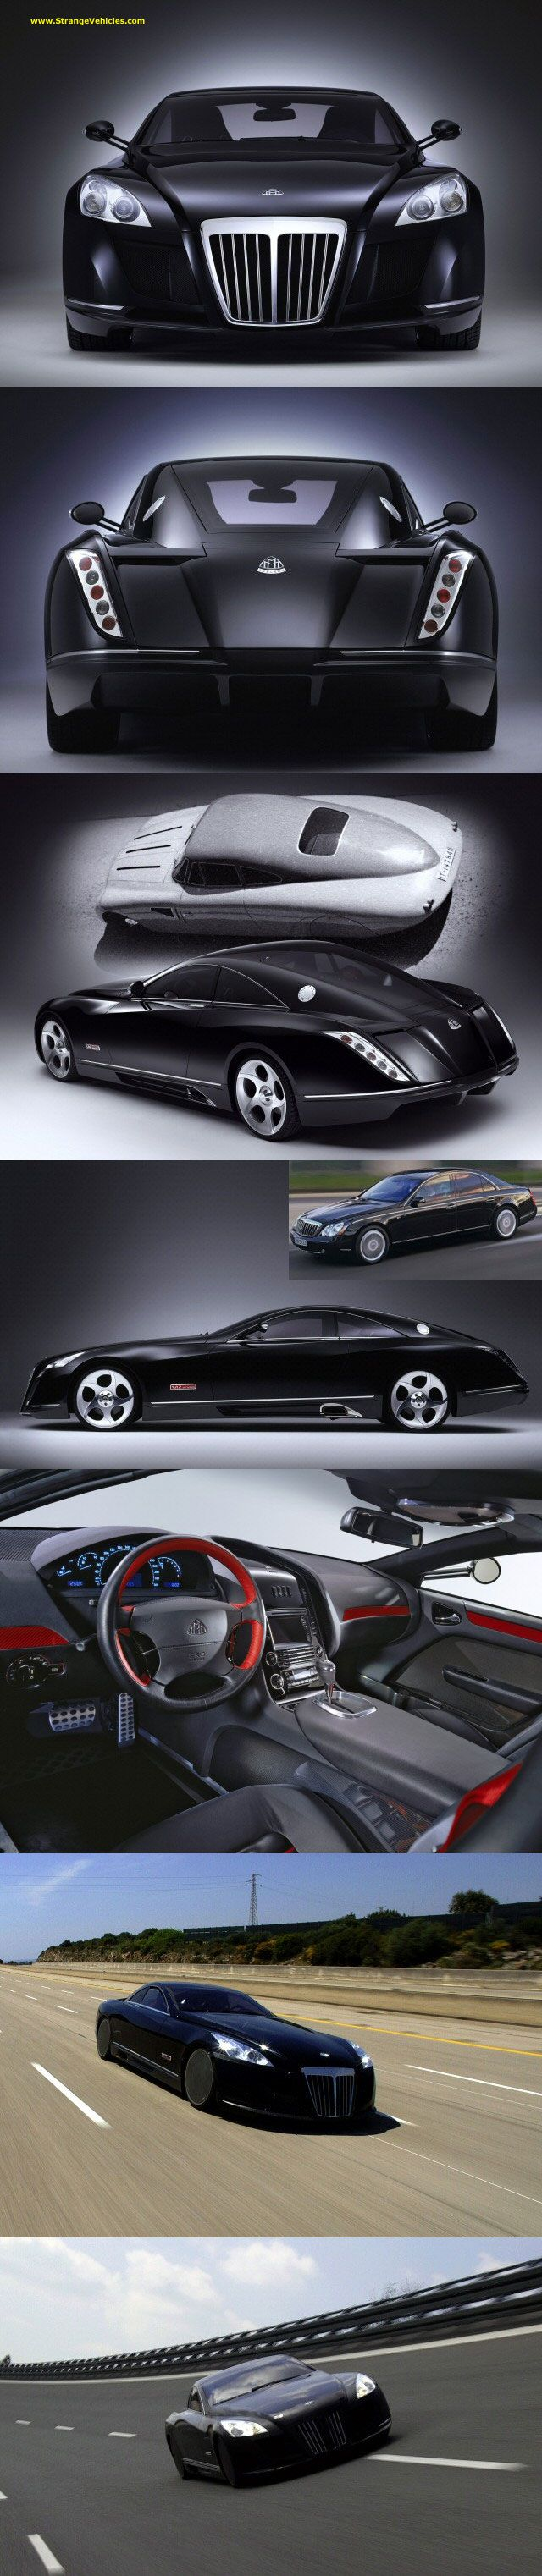 The $8 Million Supercar  Maybach Exelero.